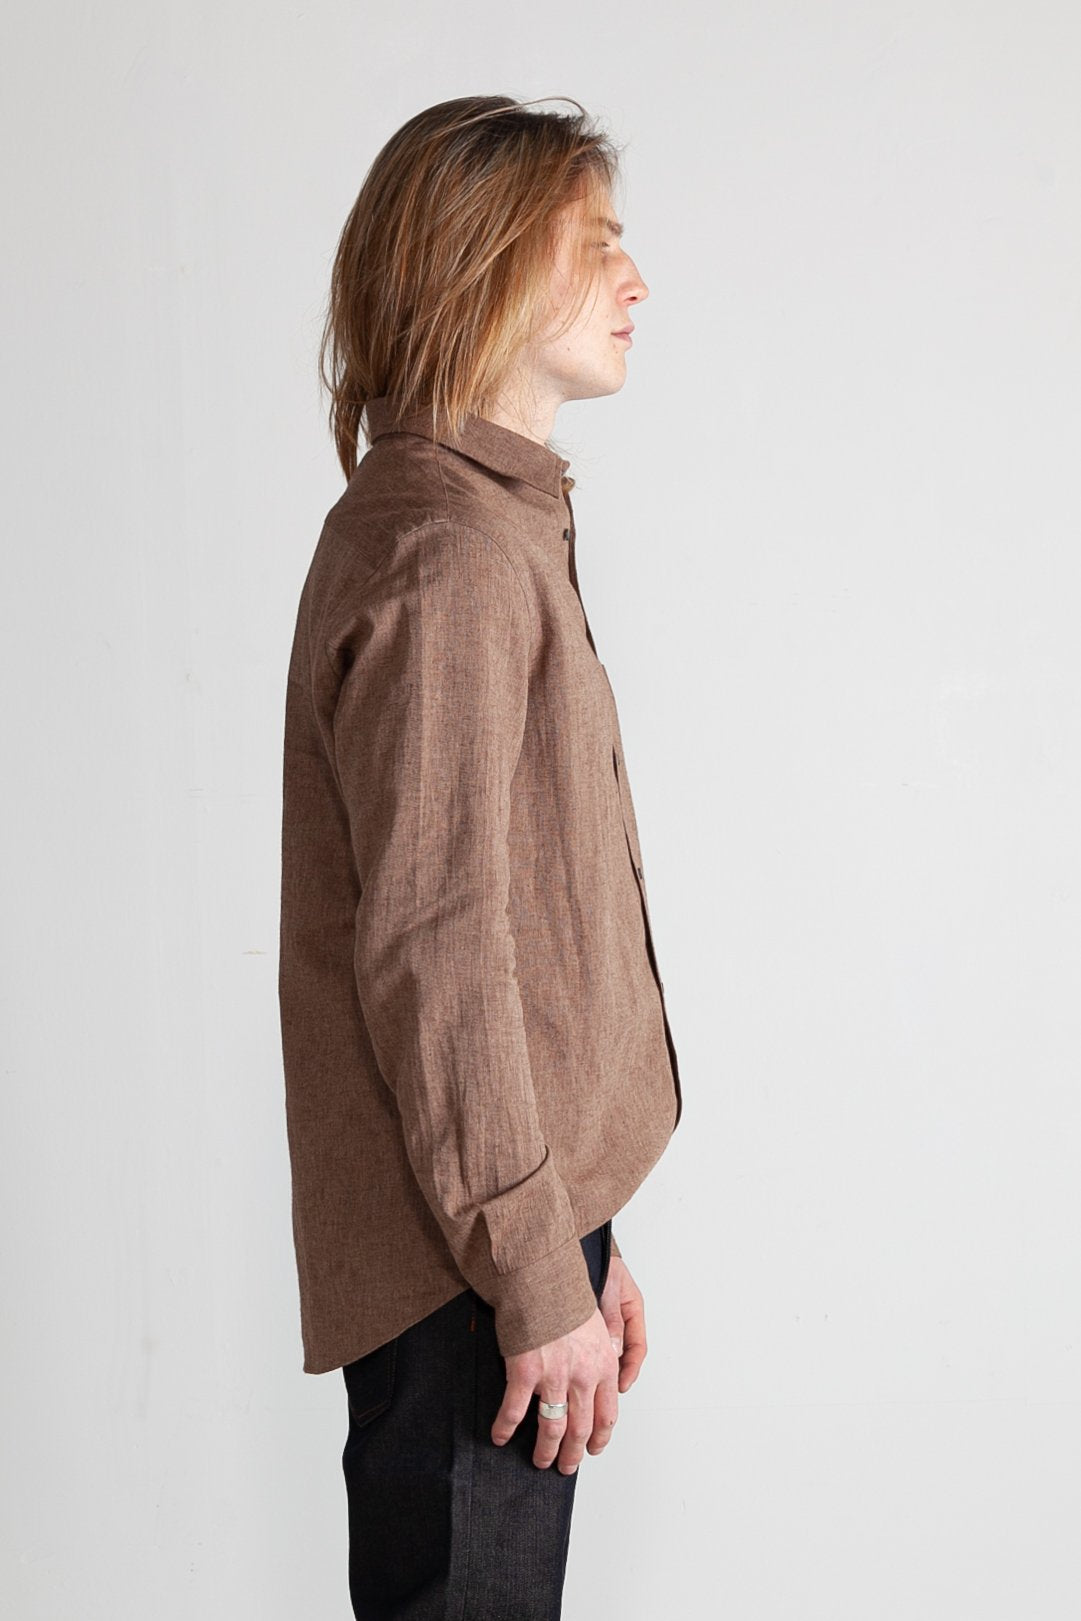 Japanese Euro Linen in Brown 03